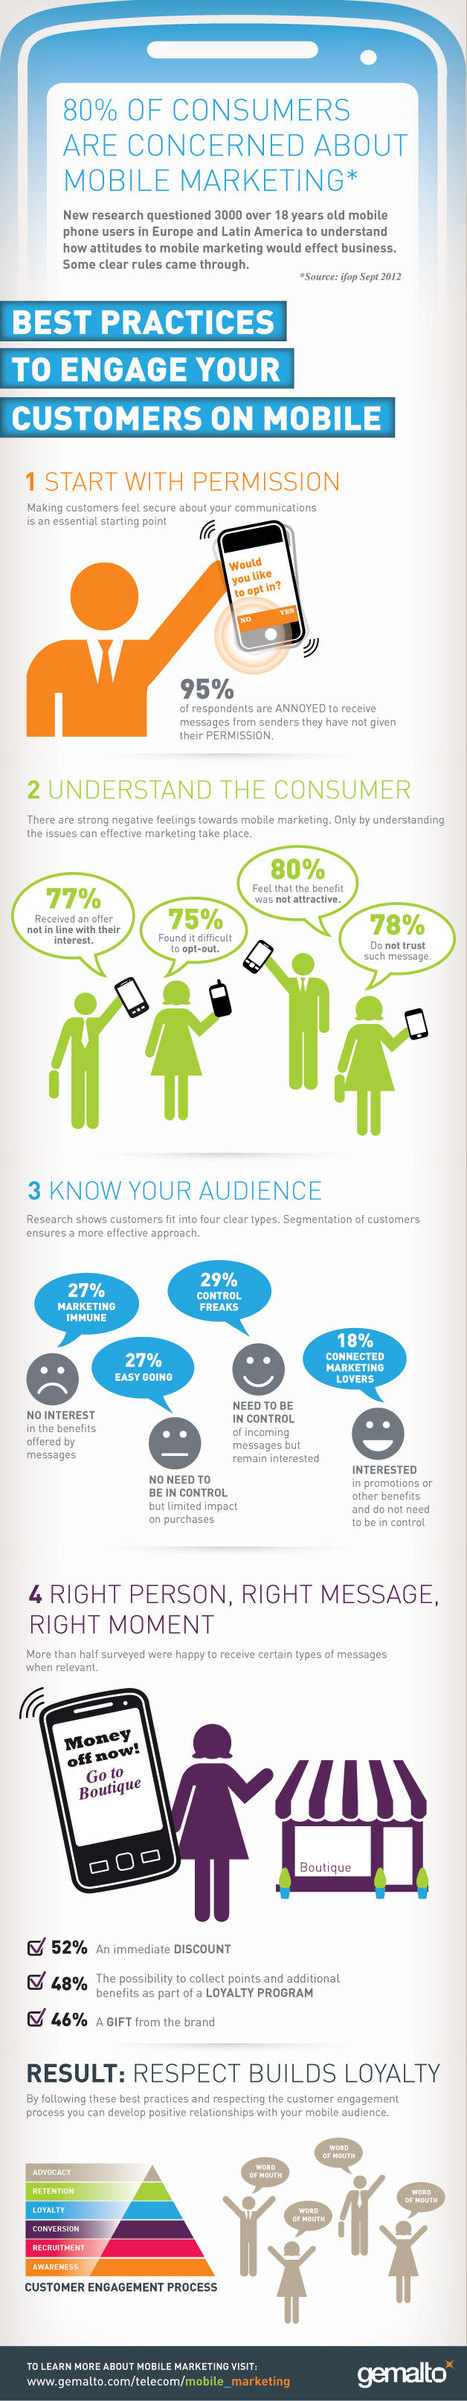 Mobile Marketing – Best Practices to Engage Your Customers on Mobile [Infographic] | Marketing, Social Media, E-commerce, Mobile, Videogames | Scoop.it